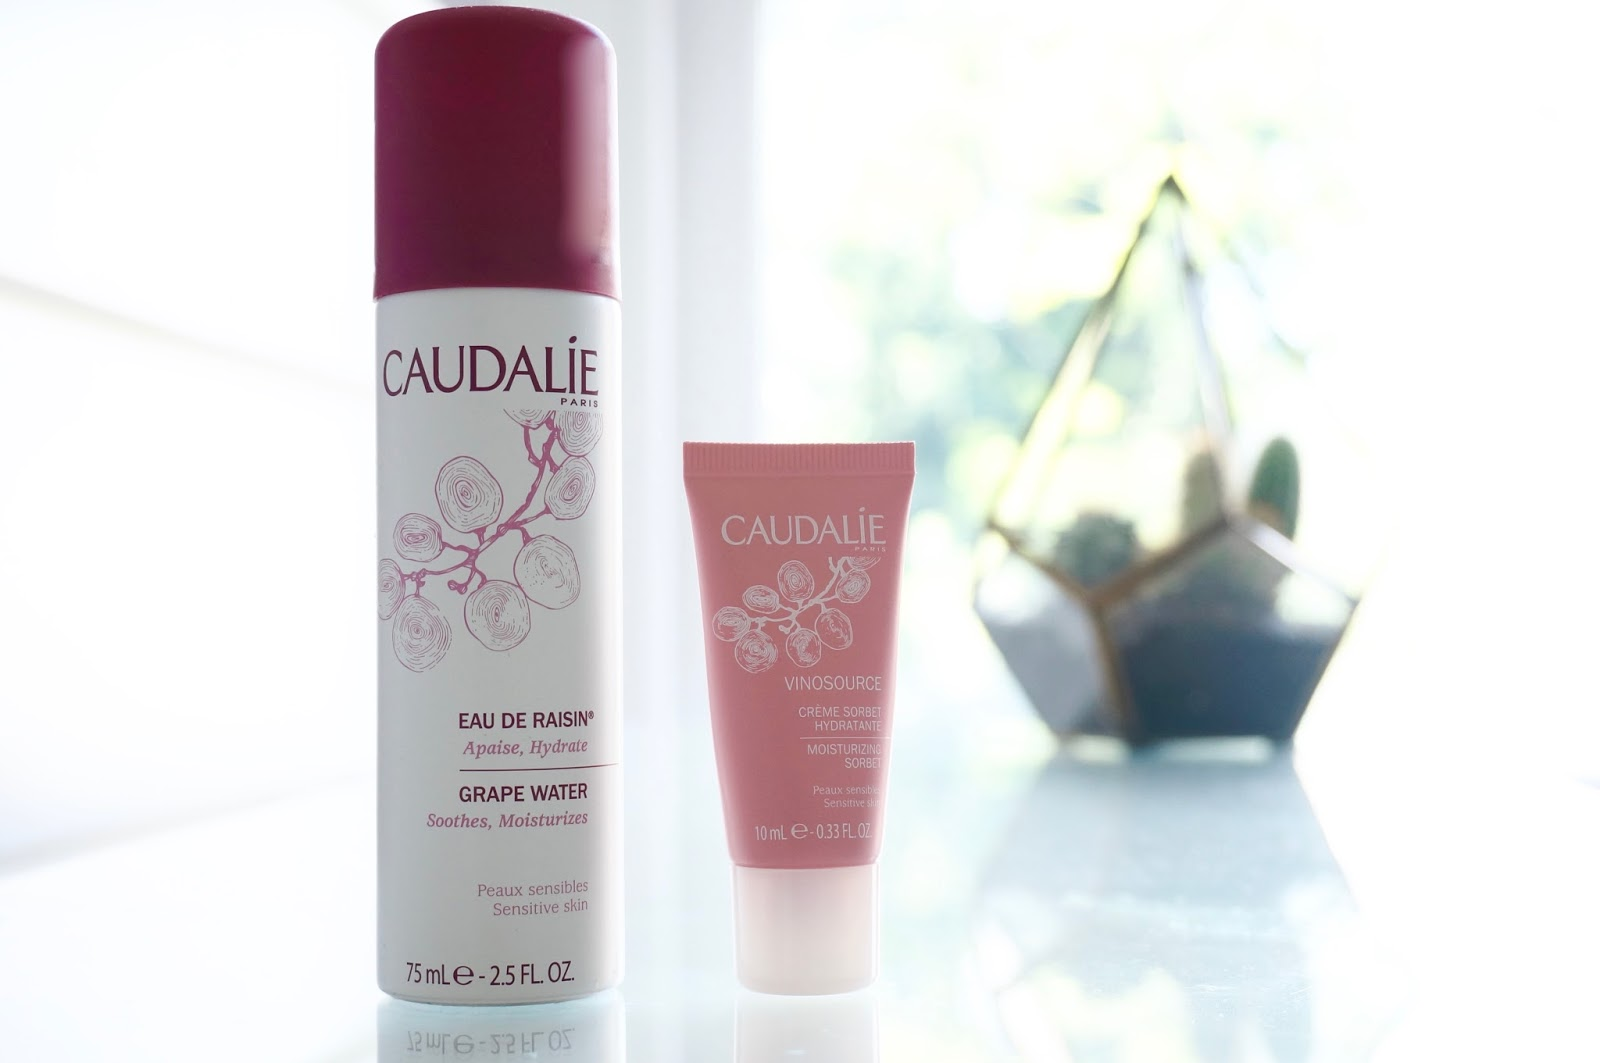 Caudalie Vinosource sorbet, grape water spray